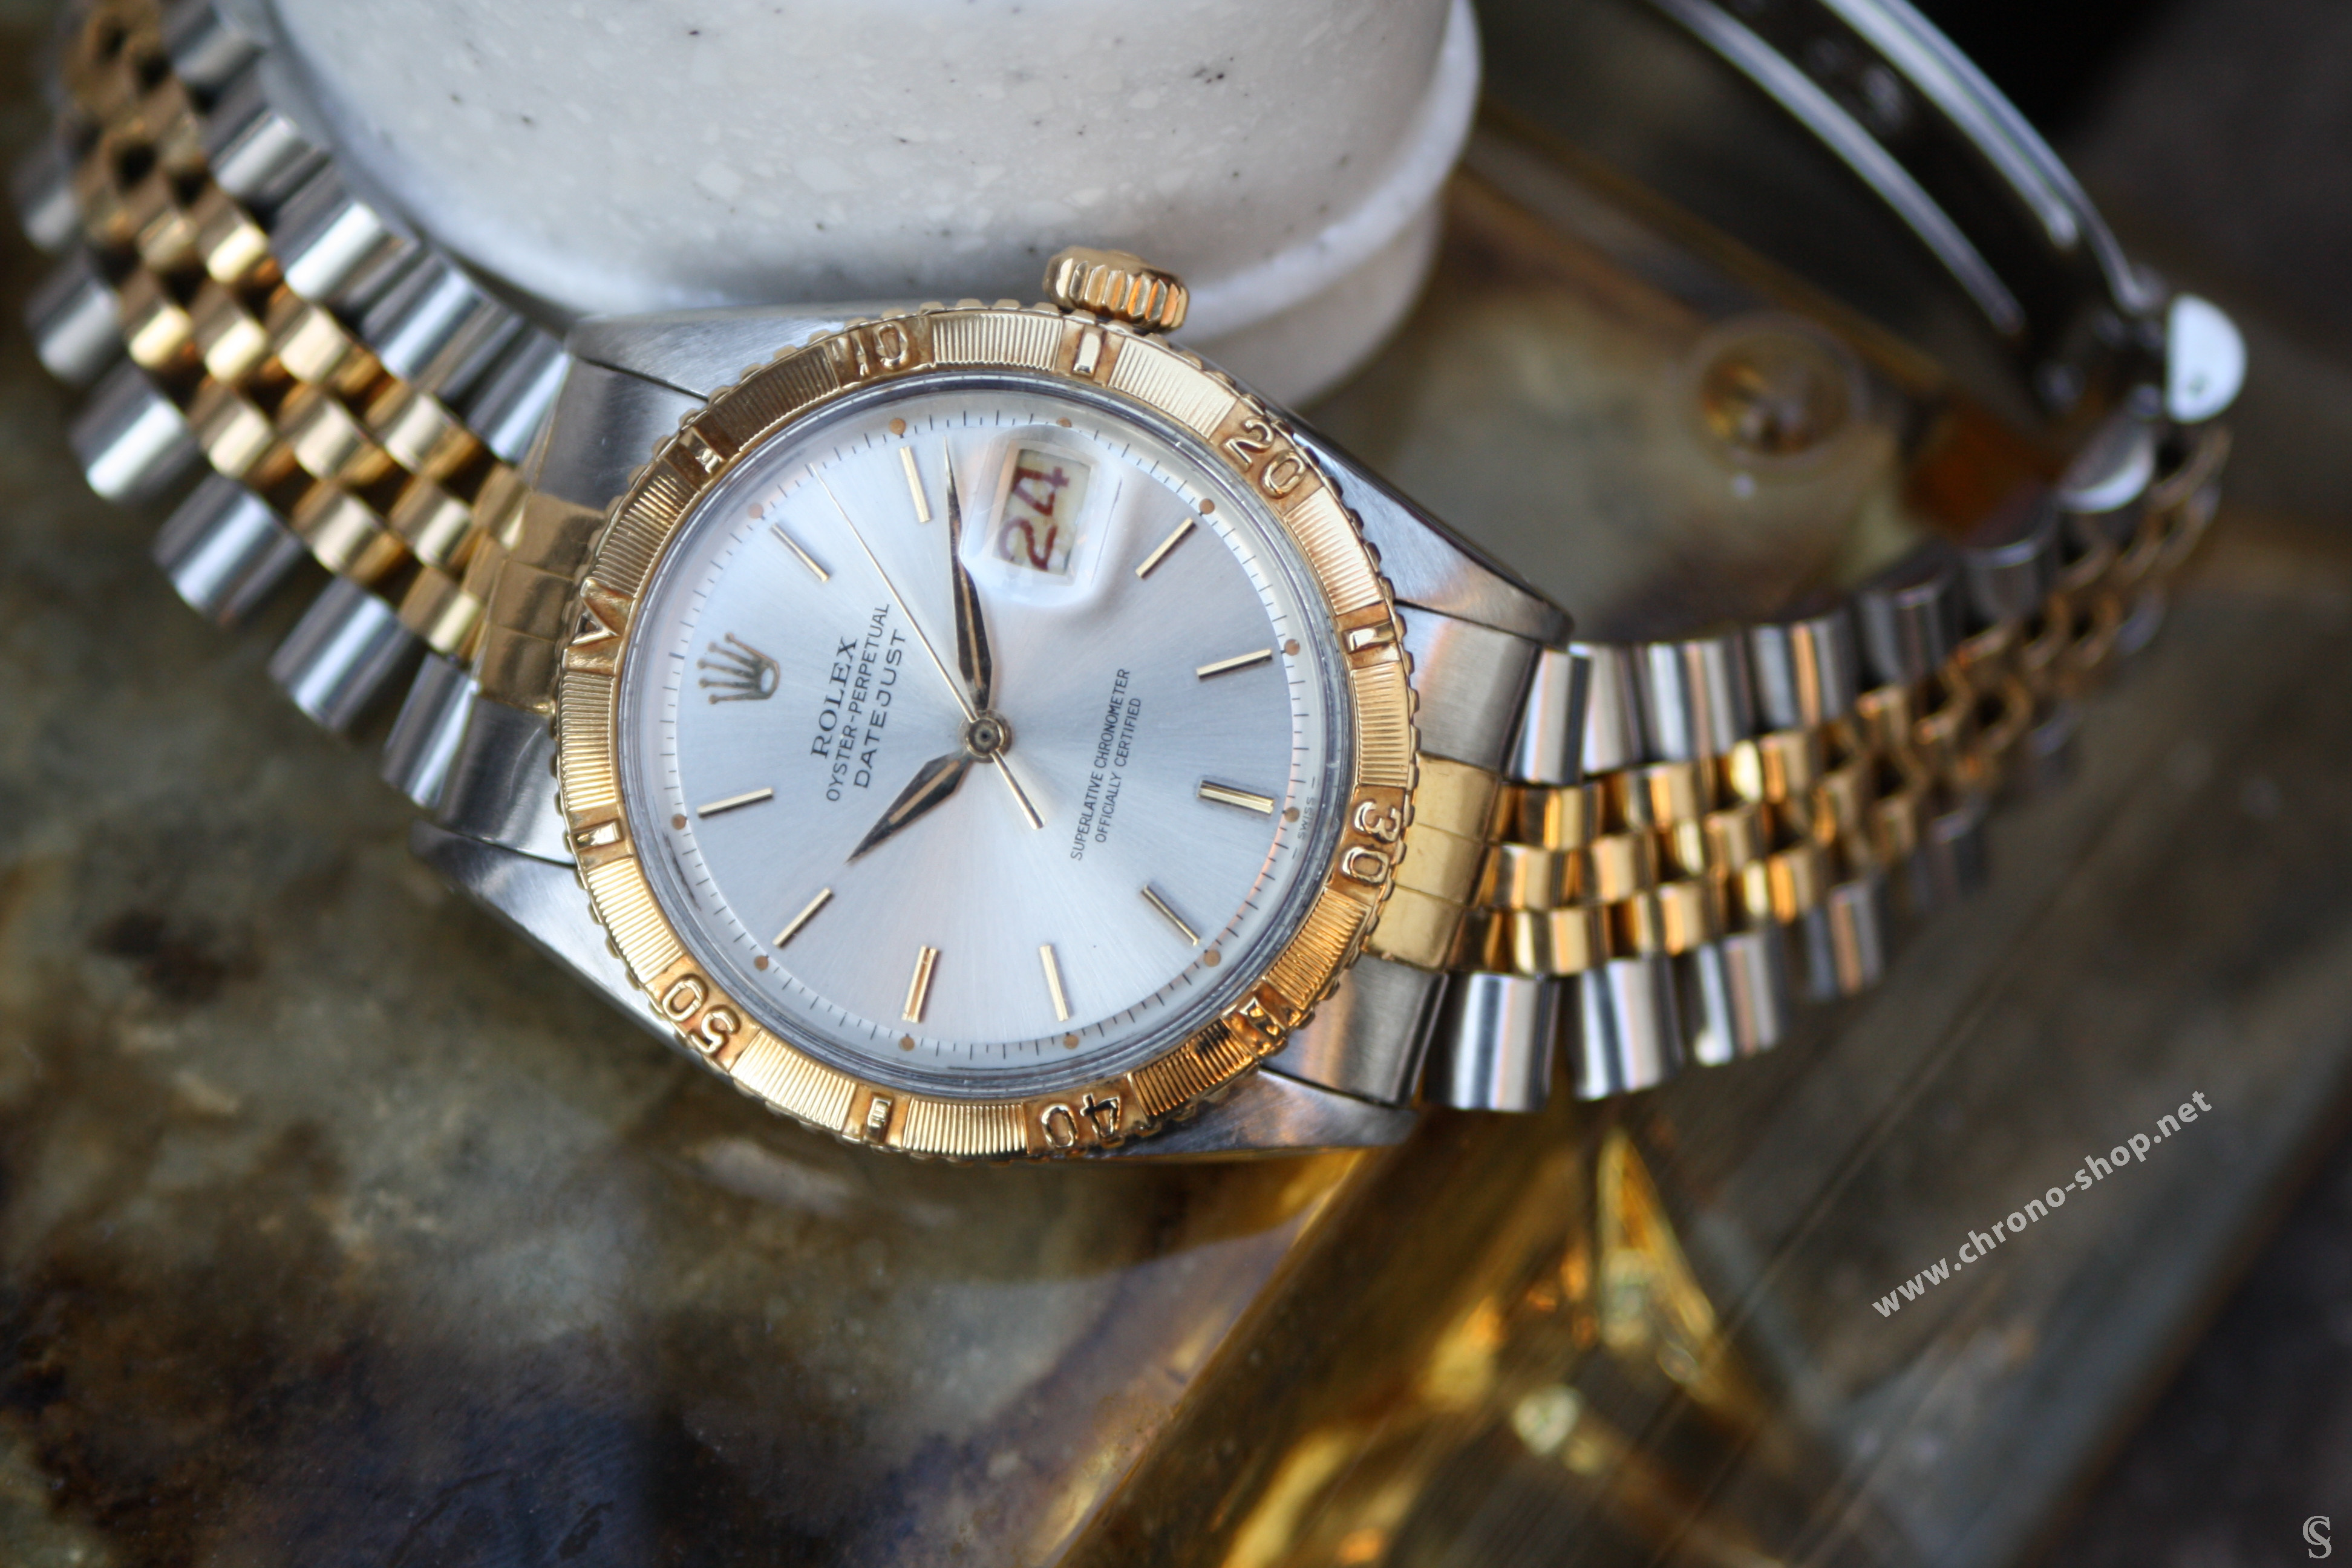 Rolex Genuine & discontinued Thunderbird Turn-O-Graph Datejust ref 6609 watch case project from 60's